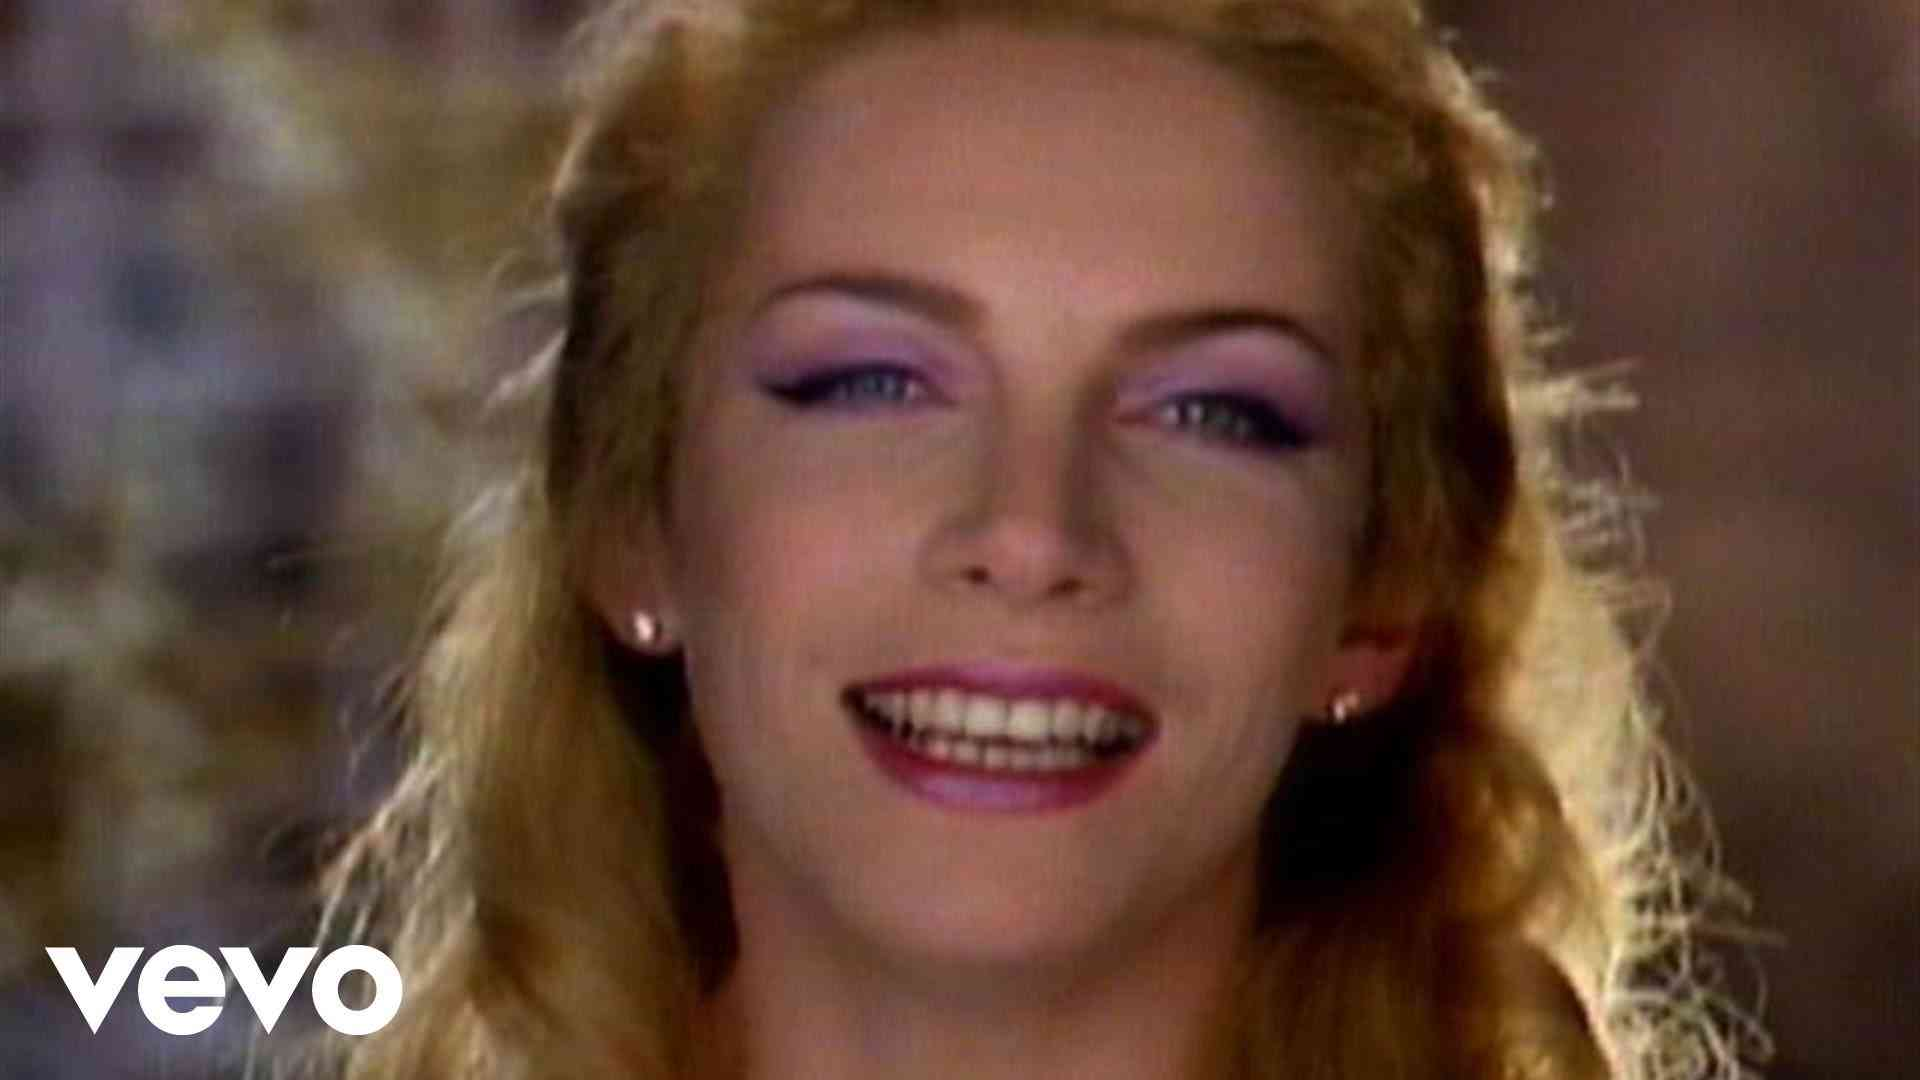 Eurythmics - There Must Be An Angel (Playing With My Heart) - YouTube